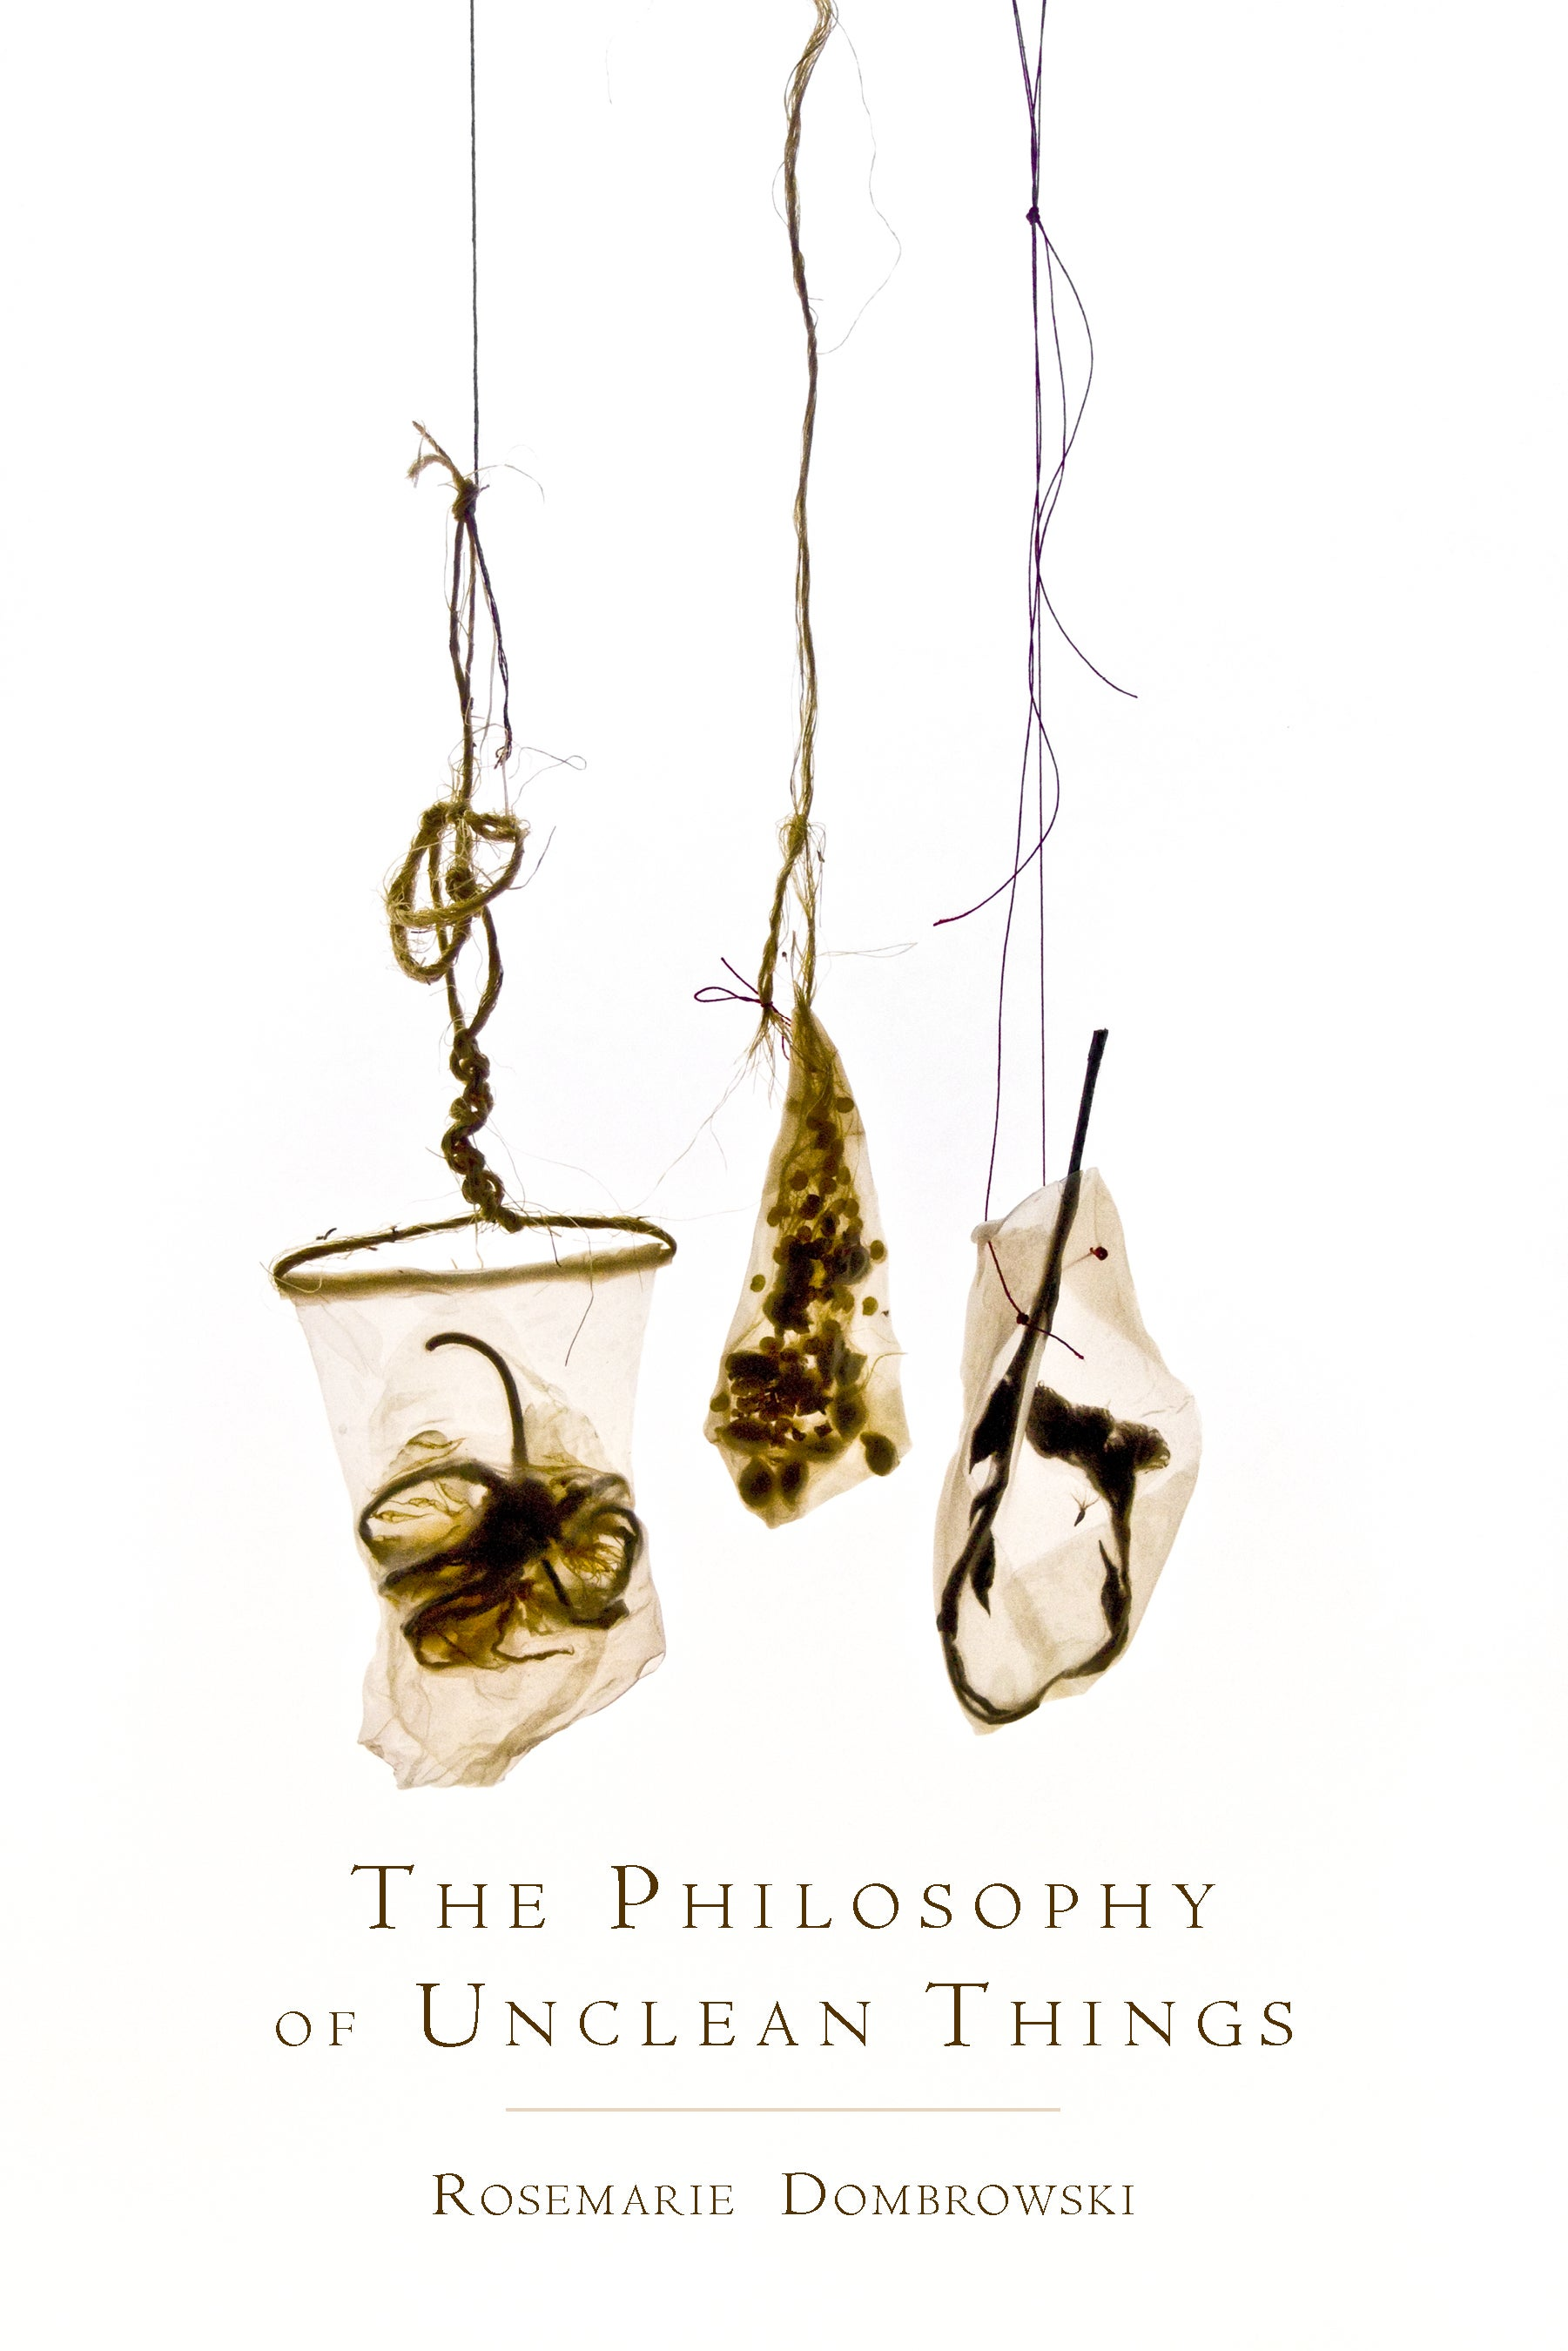 Dombrowski's book cover, the Philosophy of Unclean Things